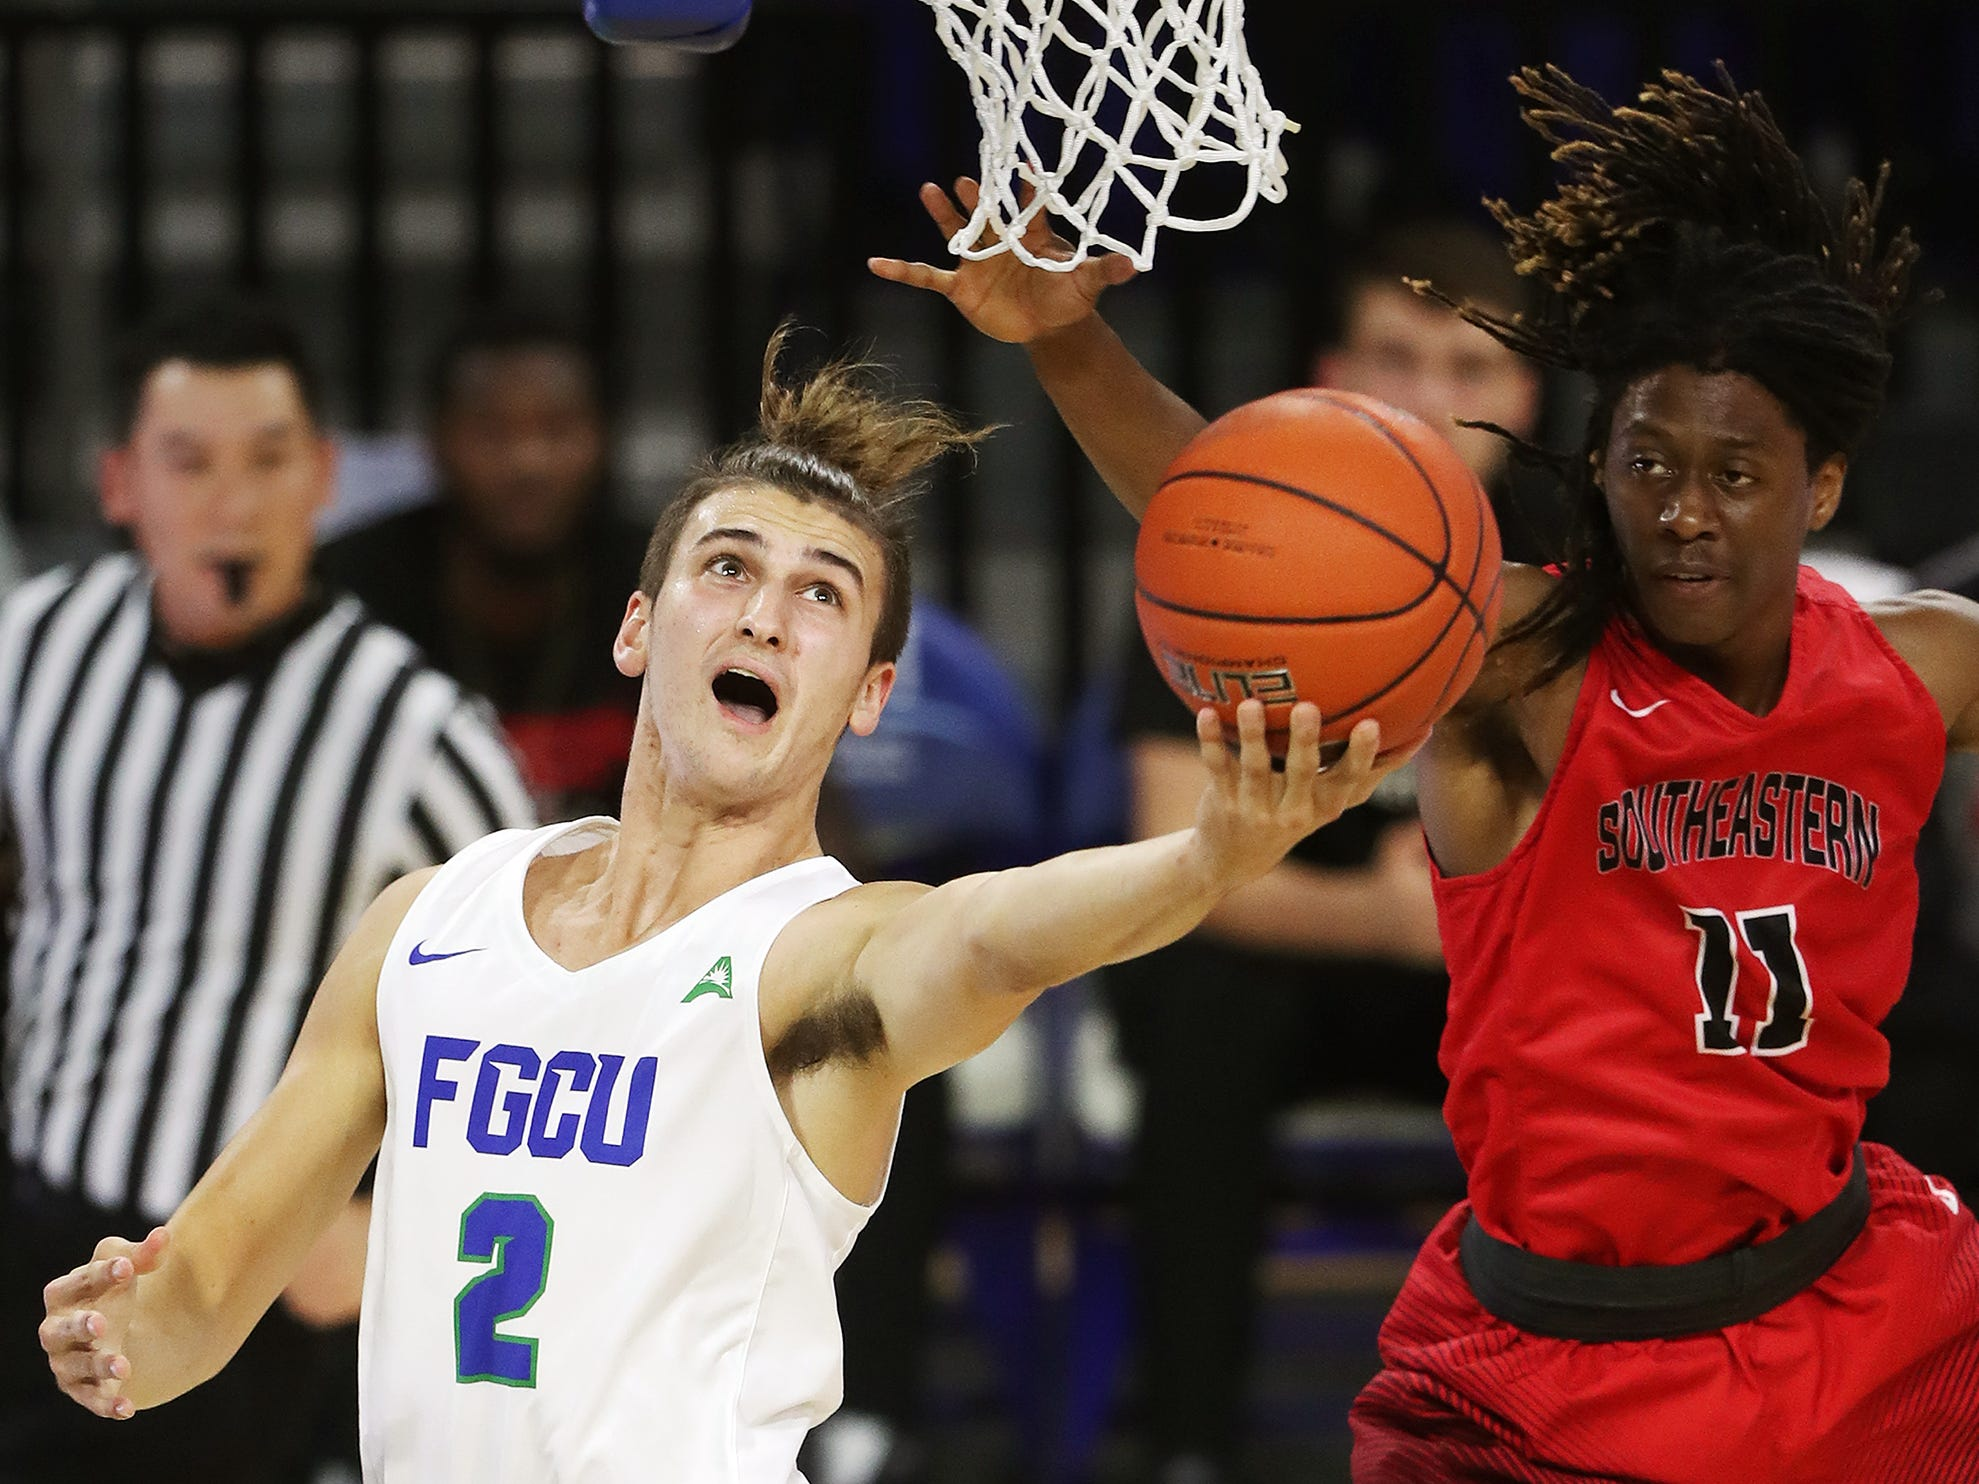 Florida Gulf Coast University's Caleb Catto scores against Southeastern University recently at Alico Arena in Fort Myers. FGCU beat Southeastern 81-54.